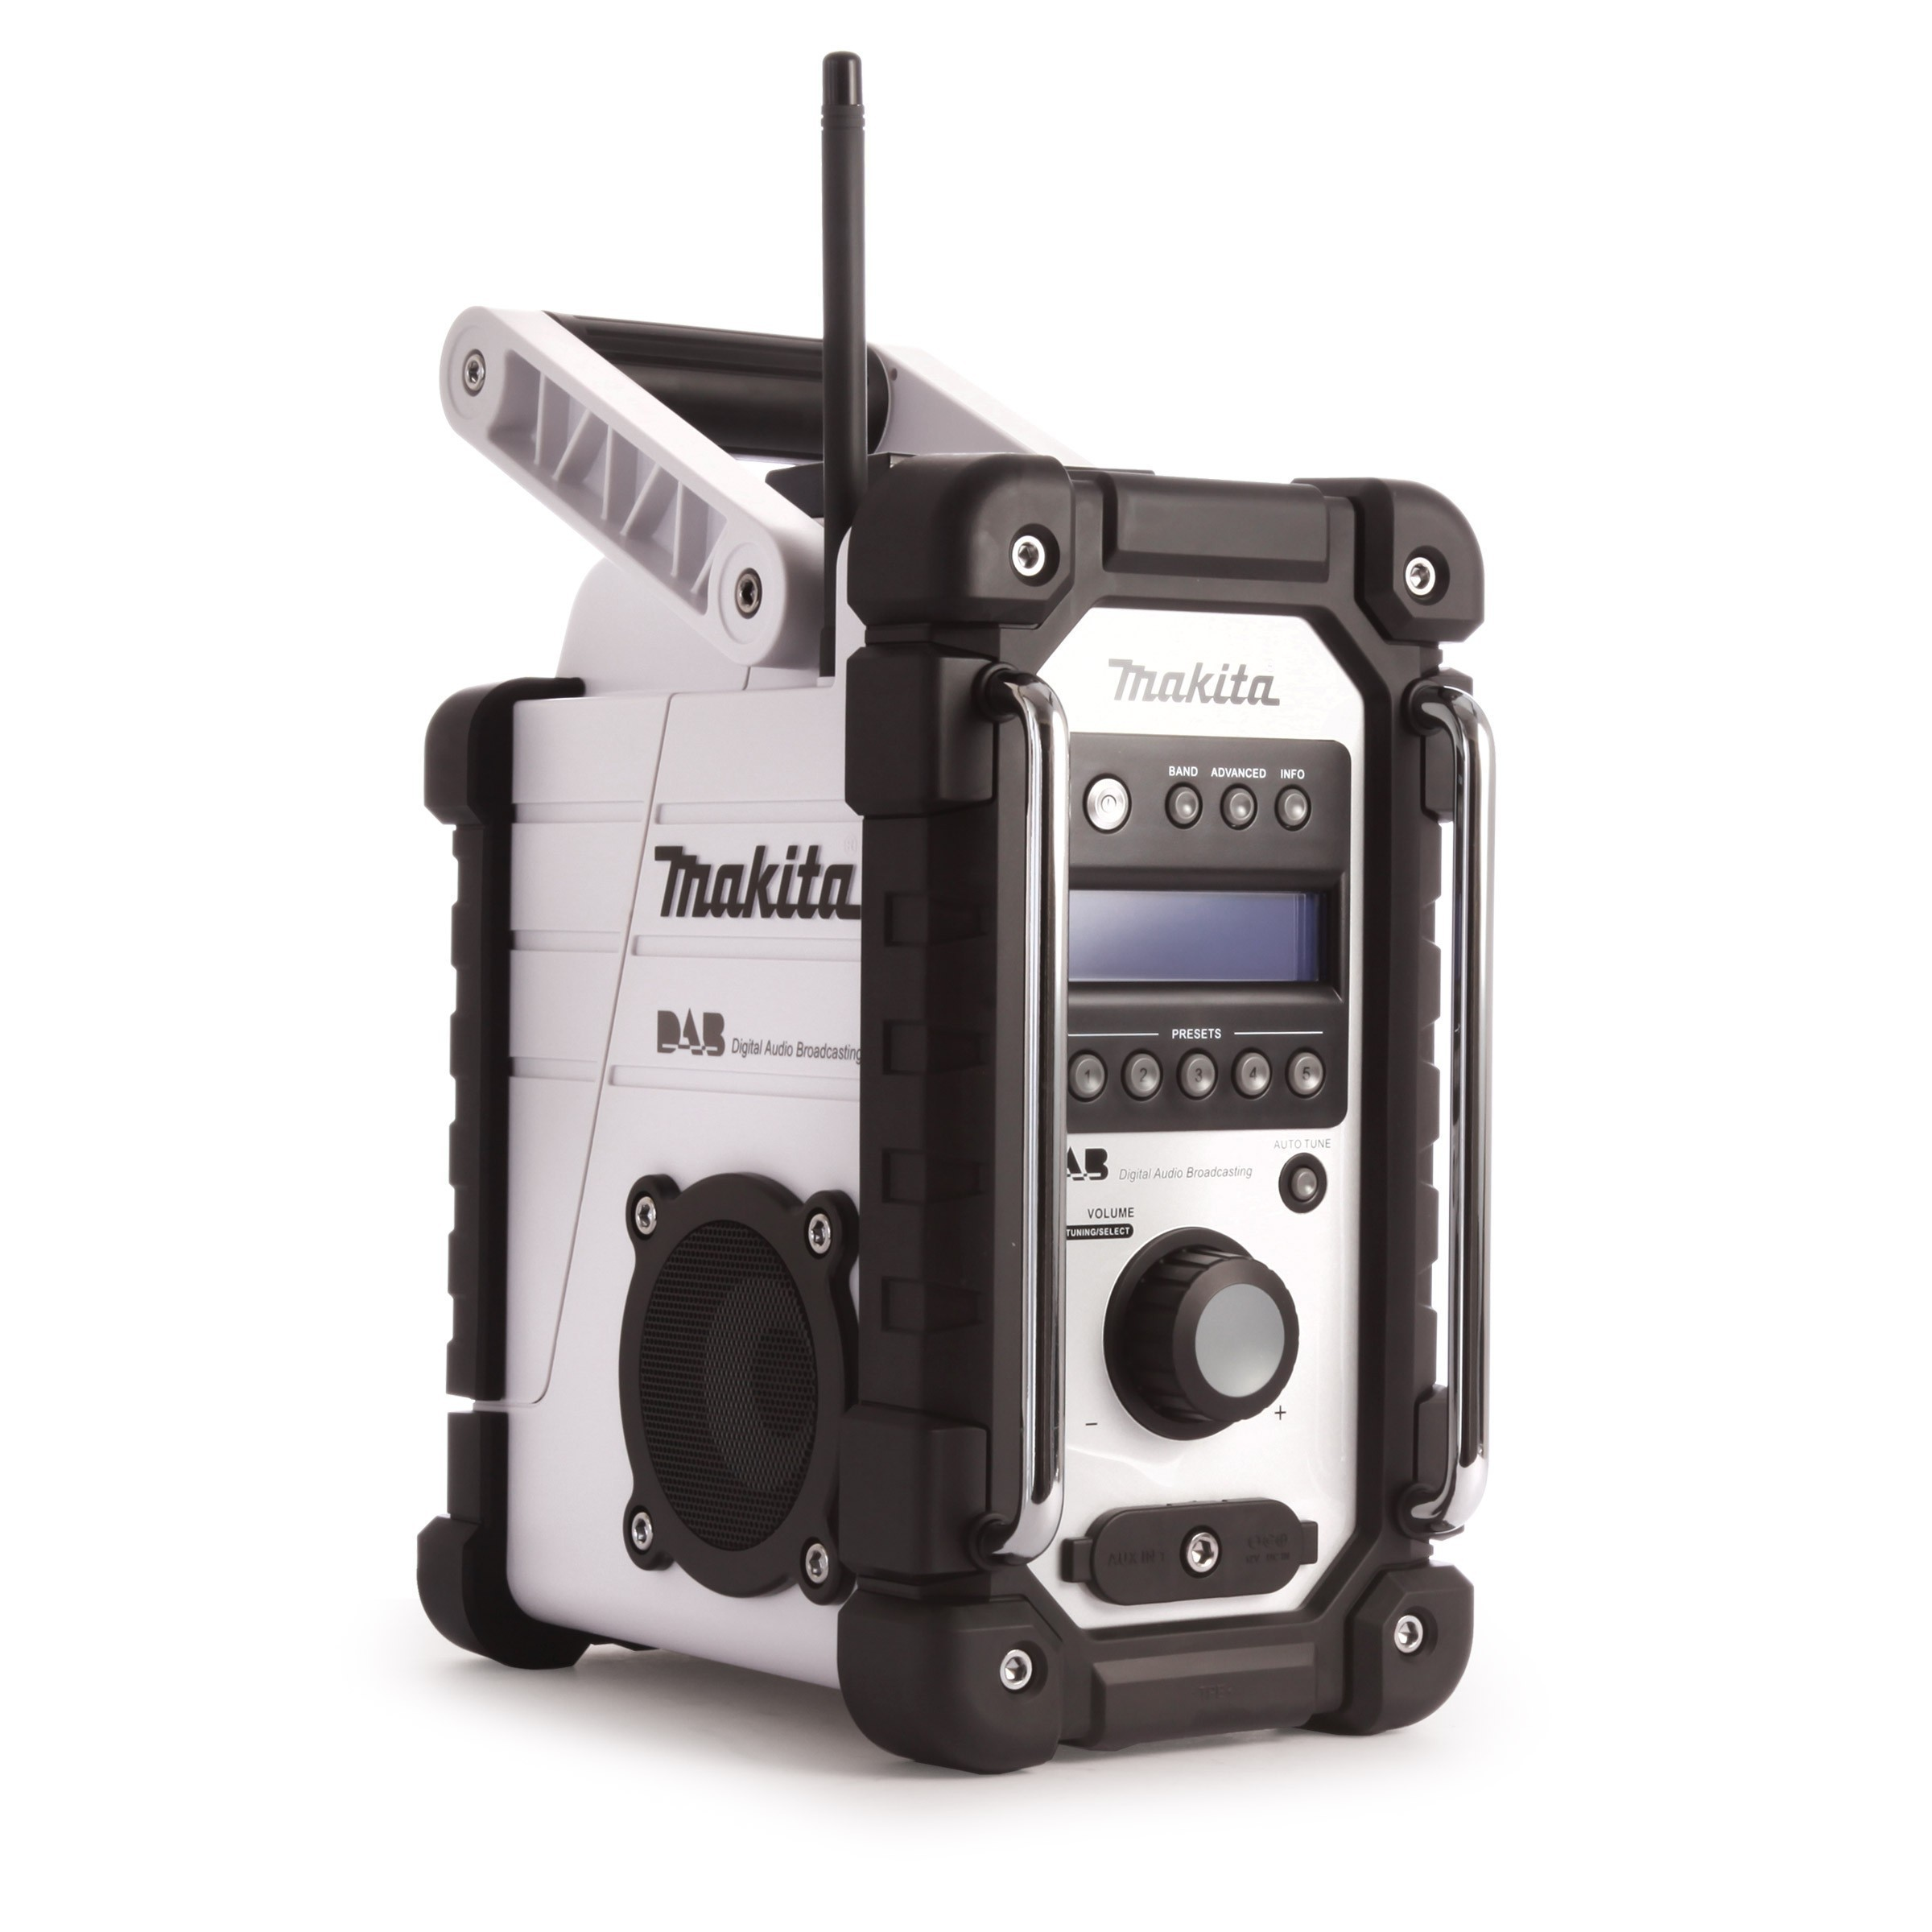 1. Makita DMR104W Job Site Radio Stereo with DAB and FM - White